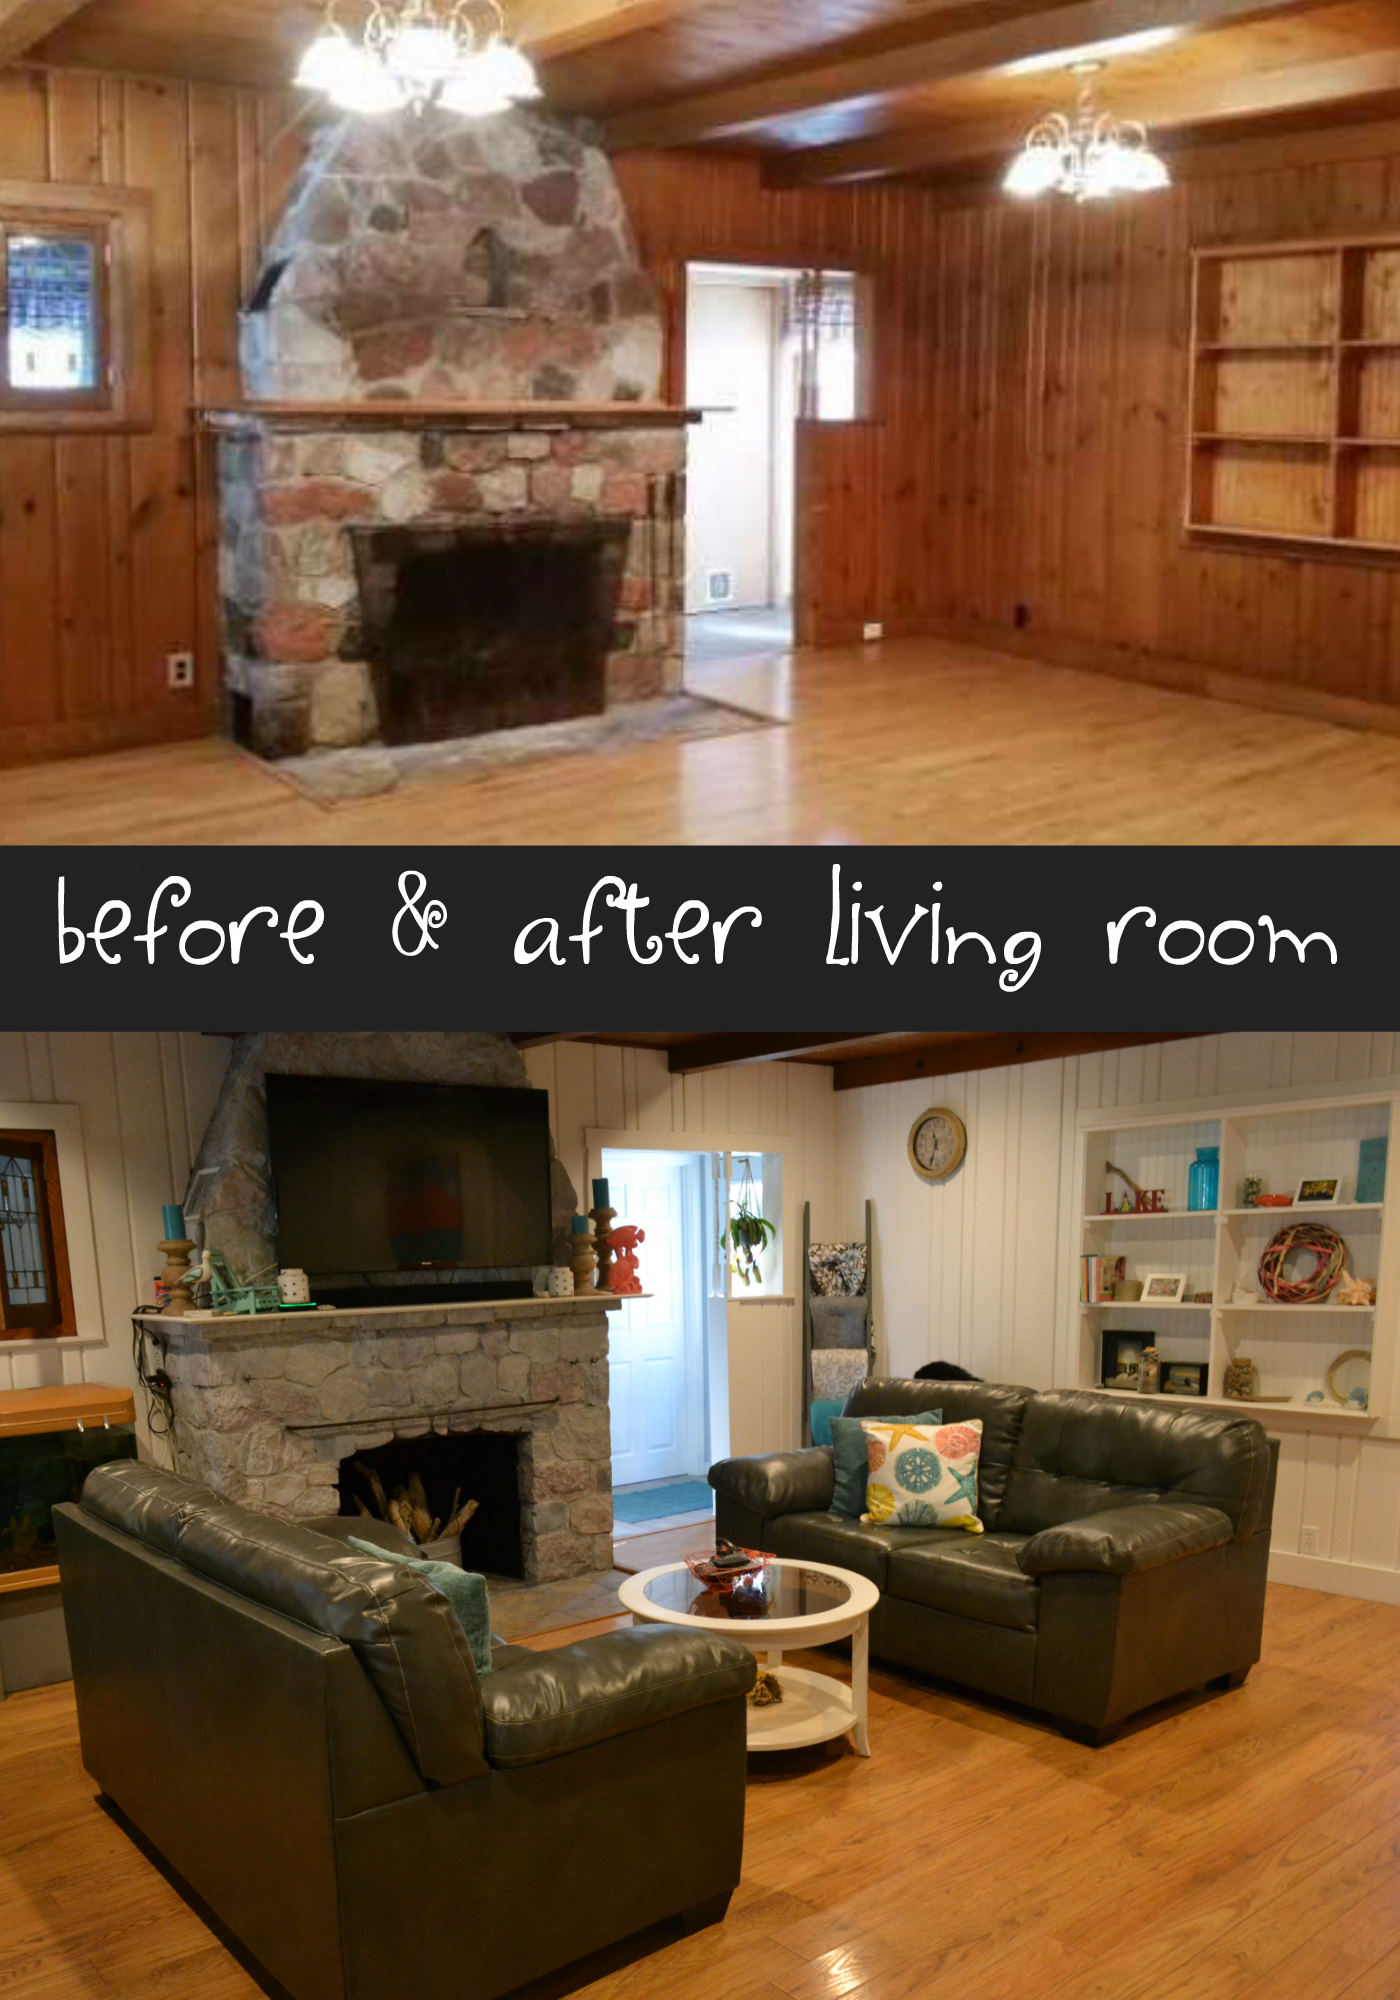 Painted Paneling Living Room: Before And After Living Room Remodel. Coastal Living Room